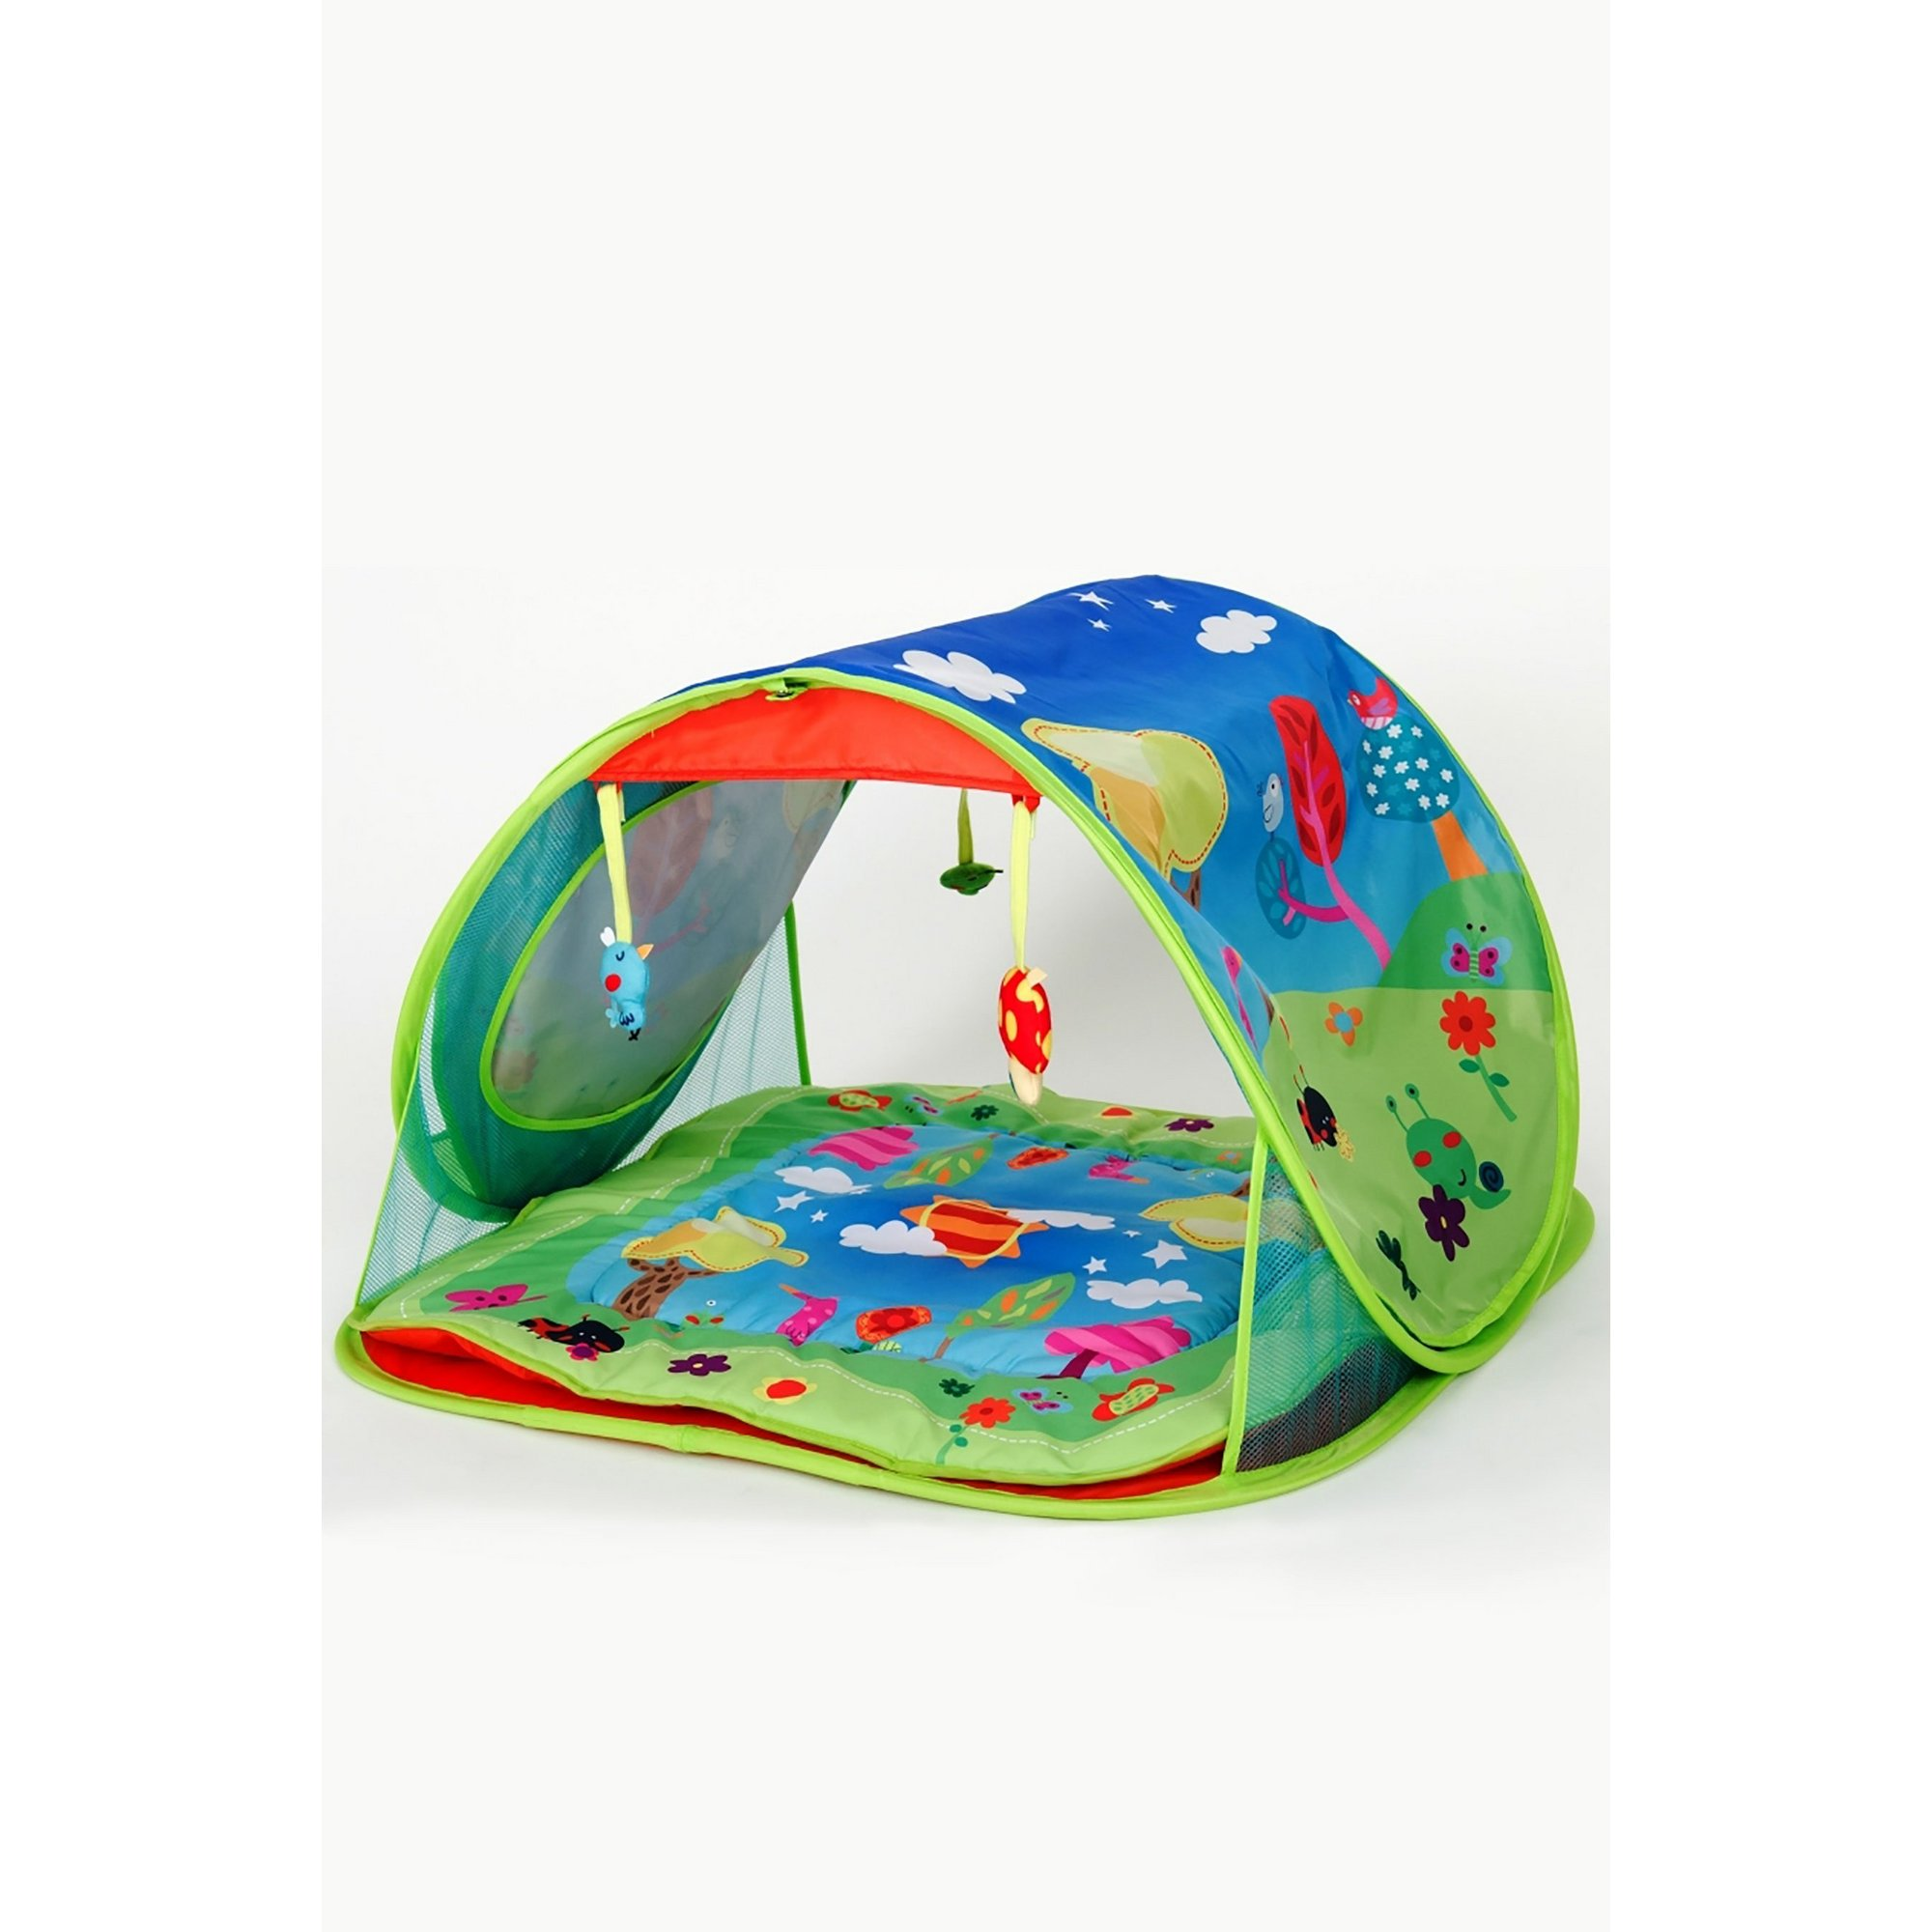 Image of Dream Garden Baby Gym with UV Protection